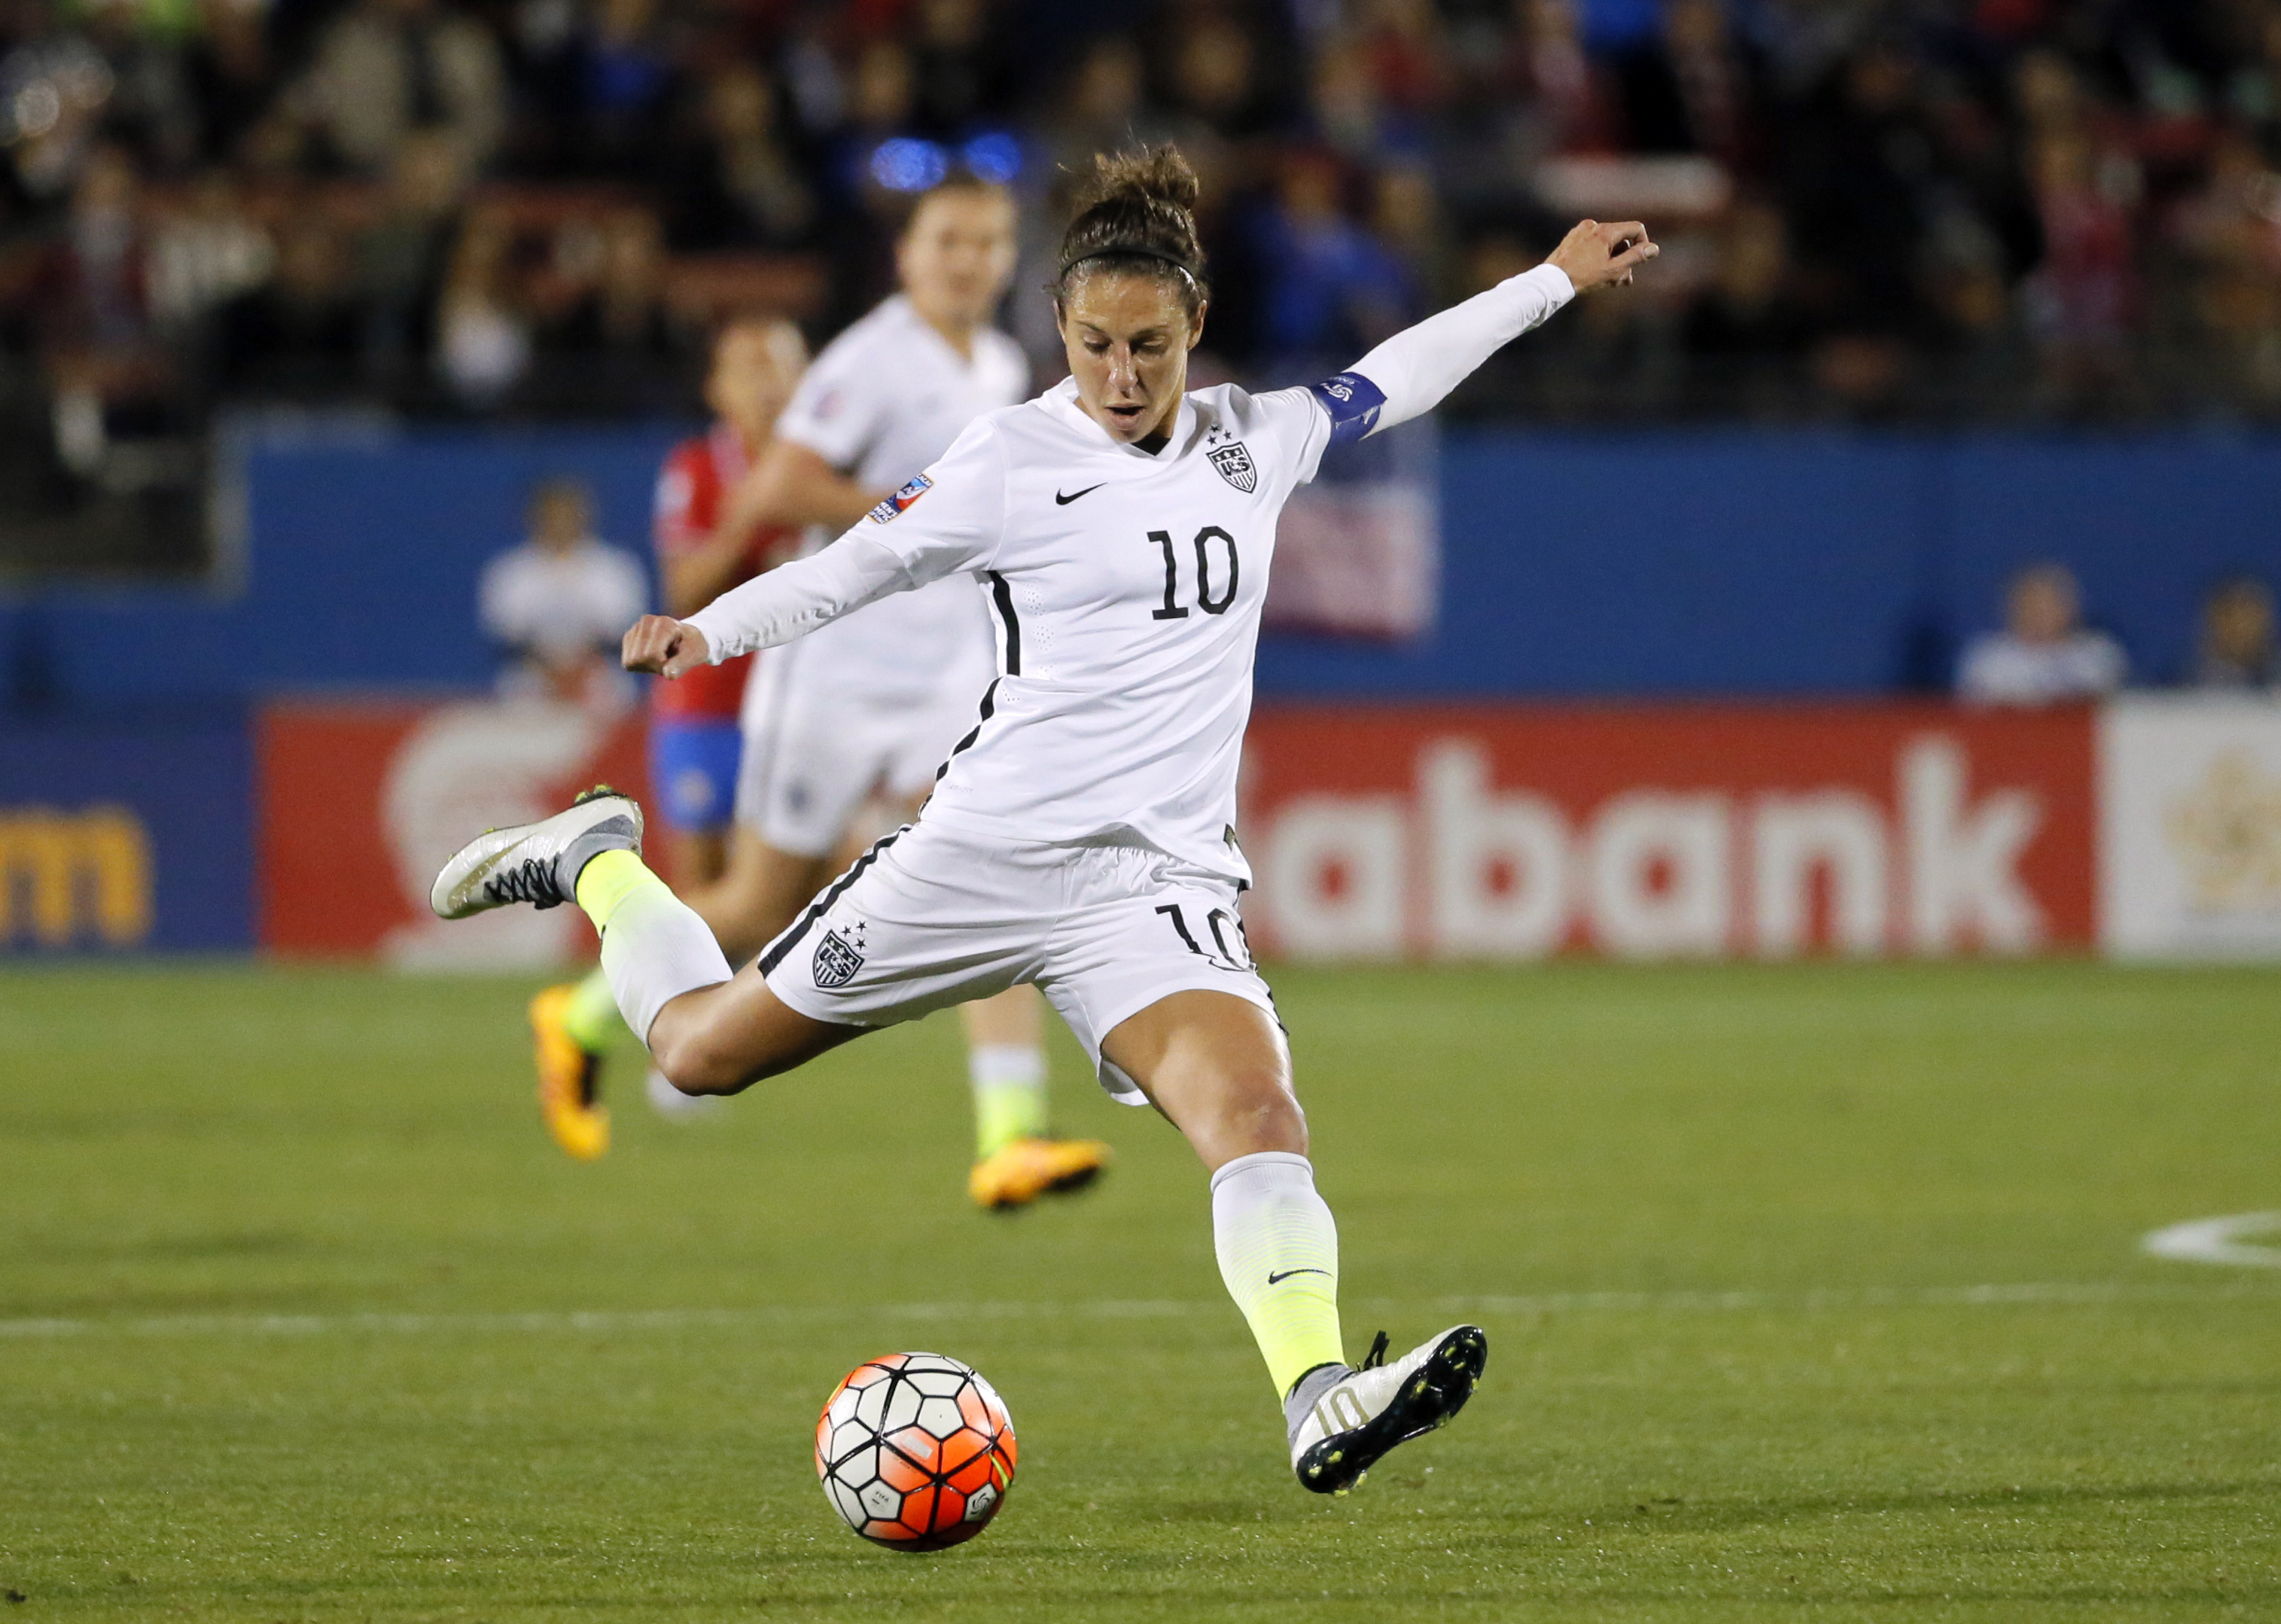 FILE - In this Feb. 10, 2016, file photo, United States' Carli Lloyd takes a shot at the Costa Rica goal during a CONCACAF Olympic qualifying tournament soccer match in Frisco, Texas. After being cut from the Under-21 U.S. national team, Lloyd was having